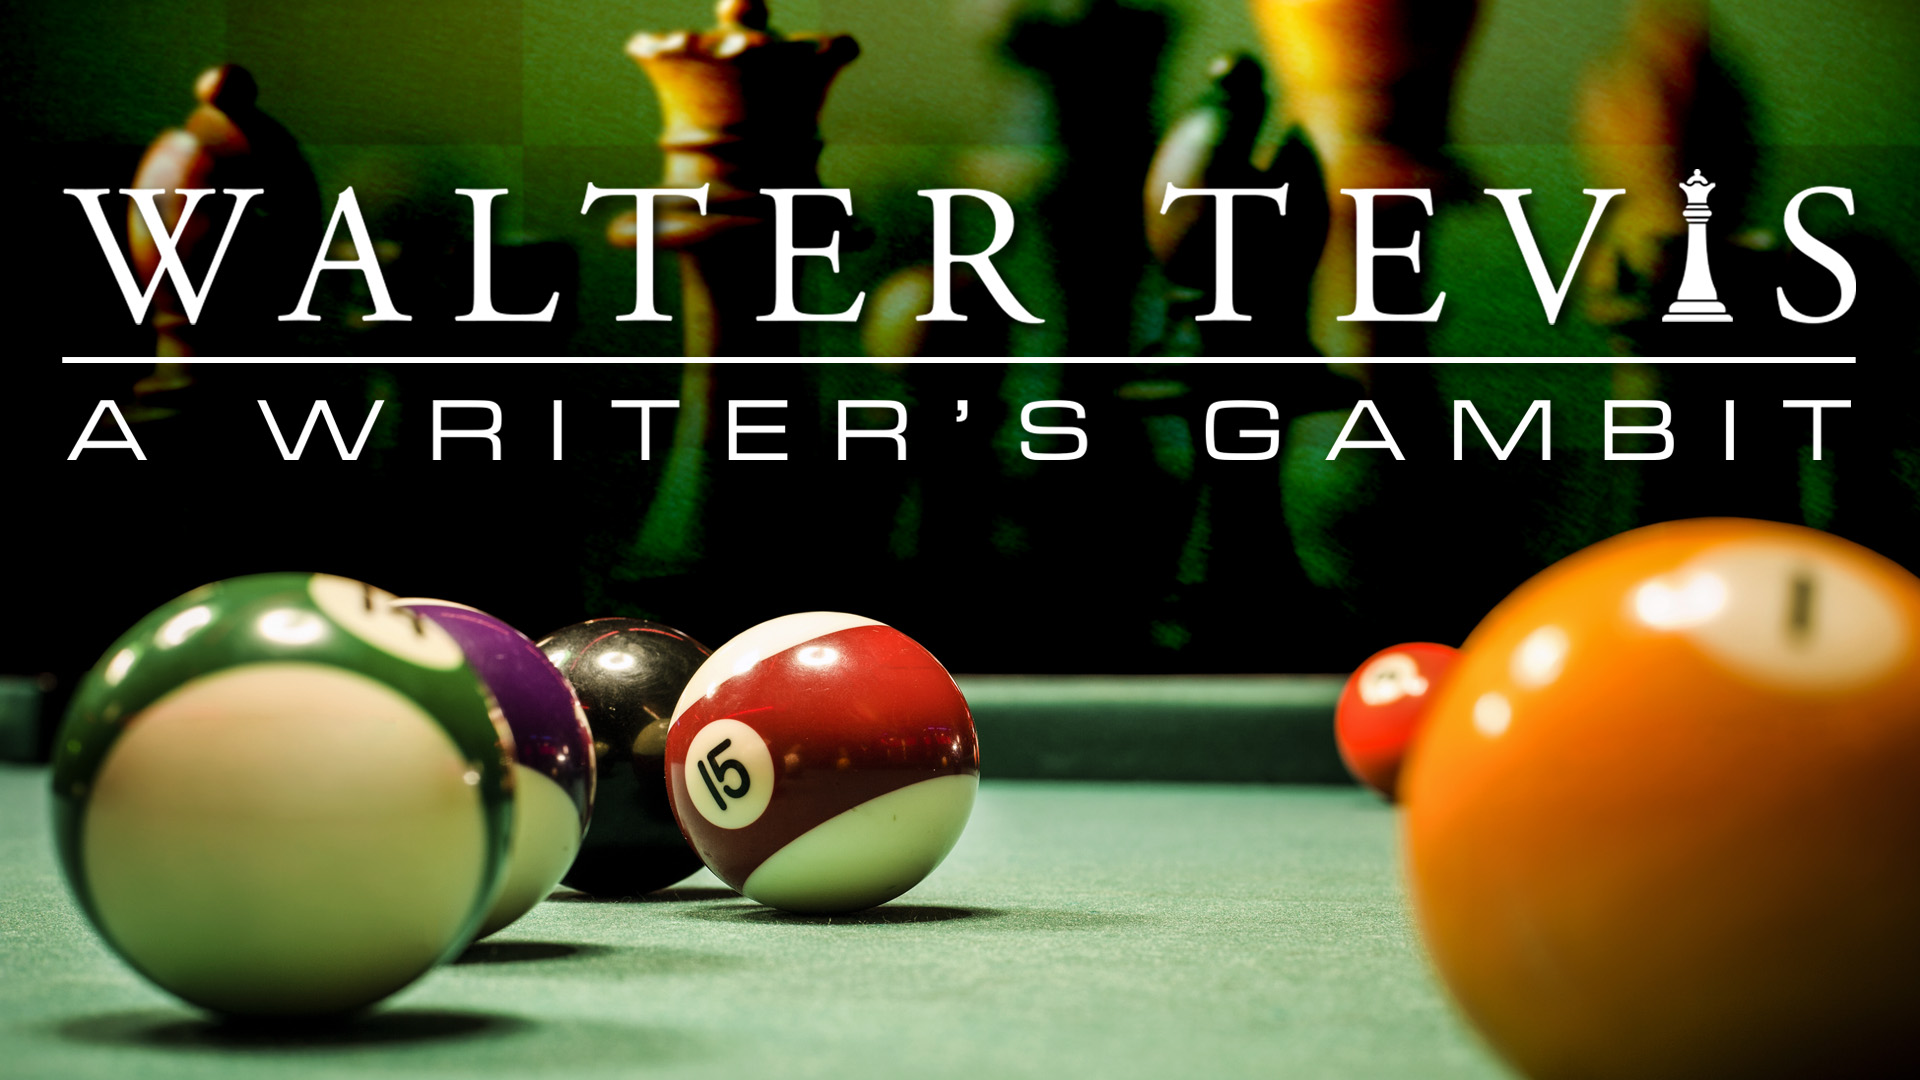 """Billiard balls in the foreground with chess pieces in the background and a text overlay that reads """"Walter Tevis, A Writer's Gambit."""""""